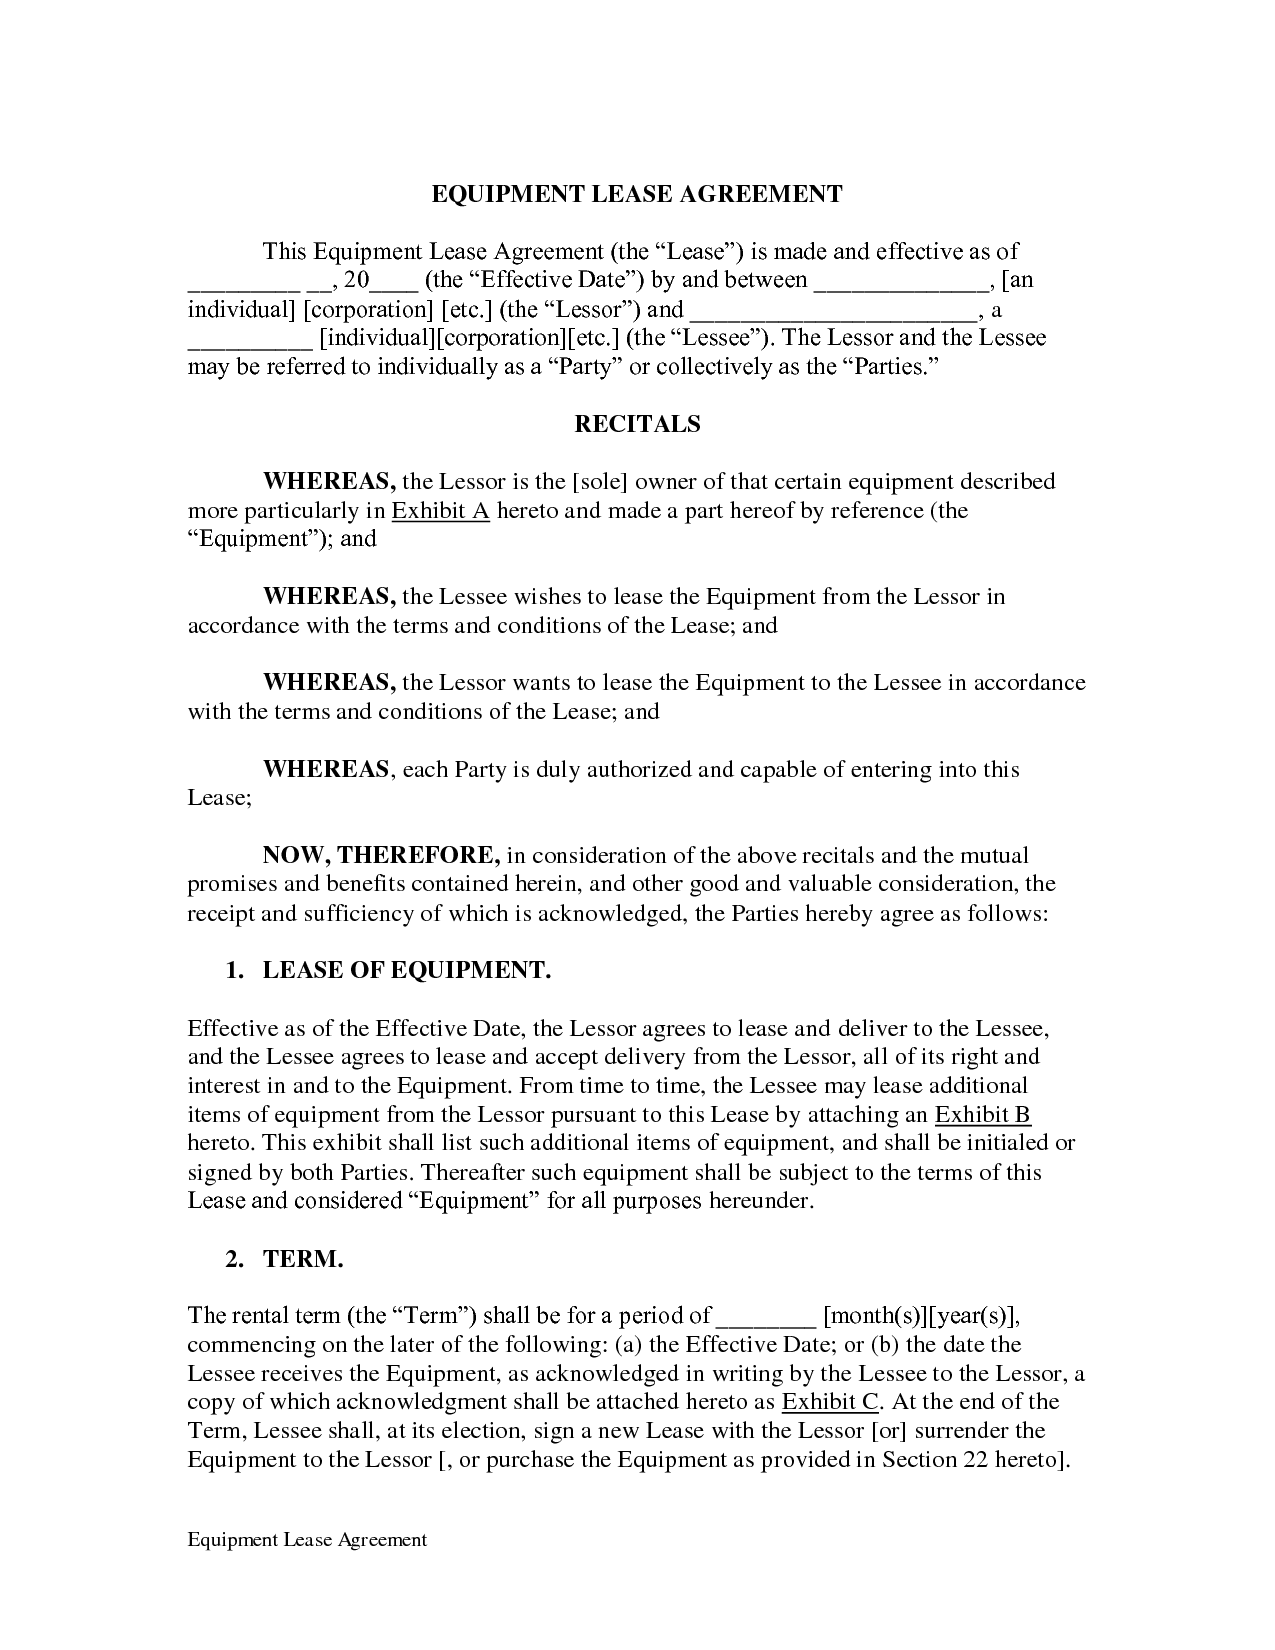 Equipment Lease Agreement DOC by LegalZoom equipment leasing – Equipment Lease Form